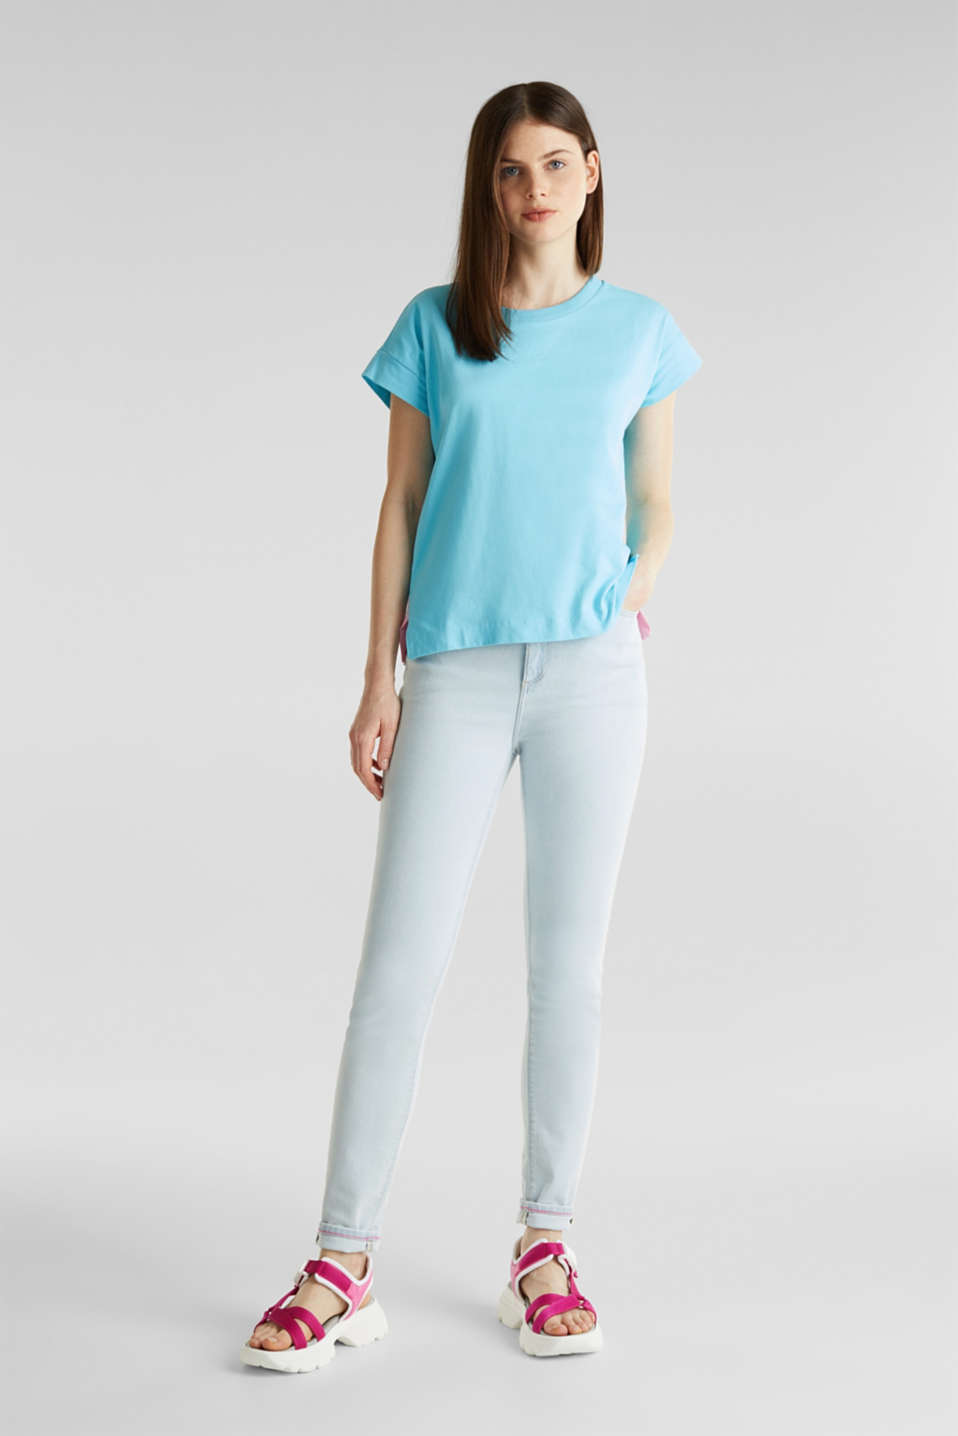 Loose-cut top, TURQUOISE, detail image number 1